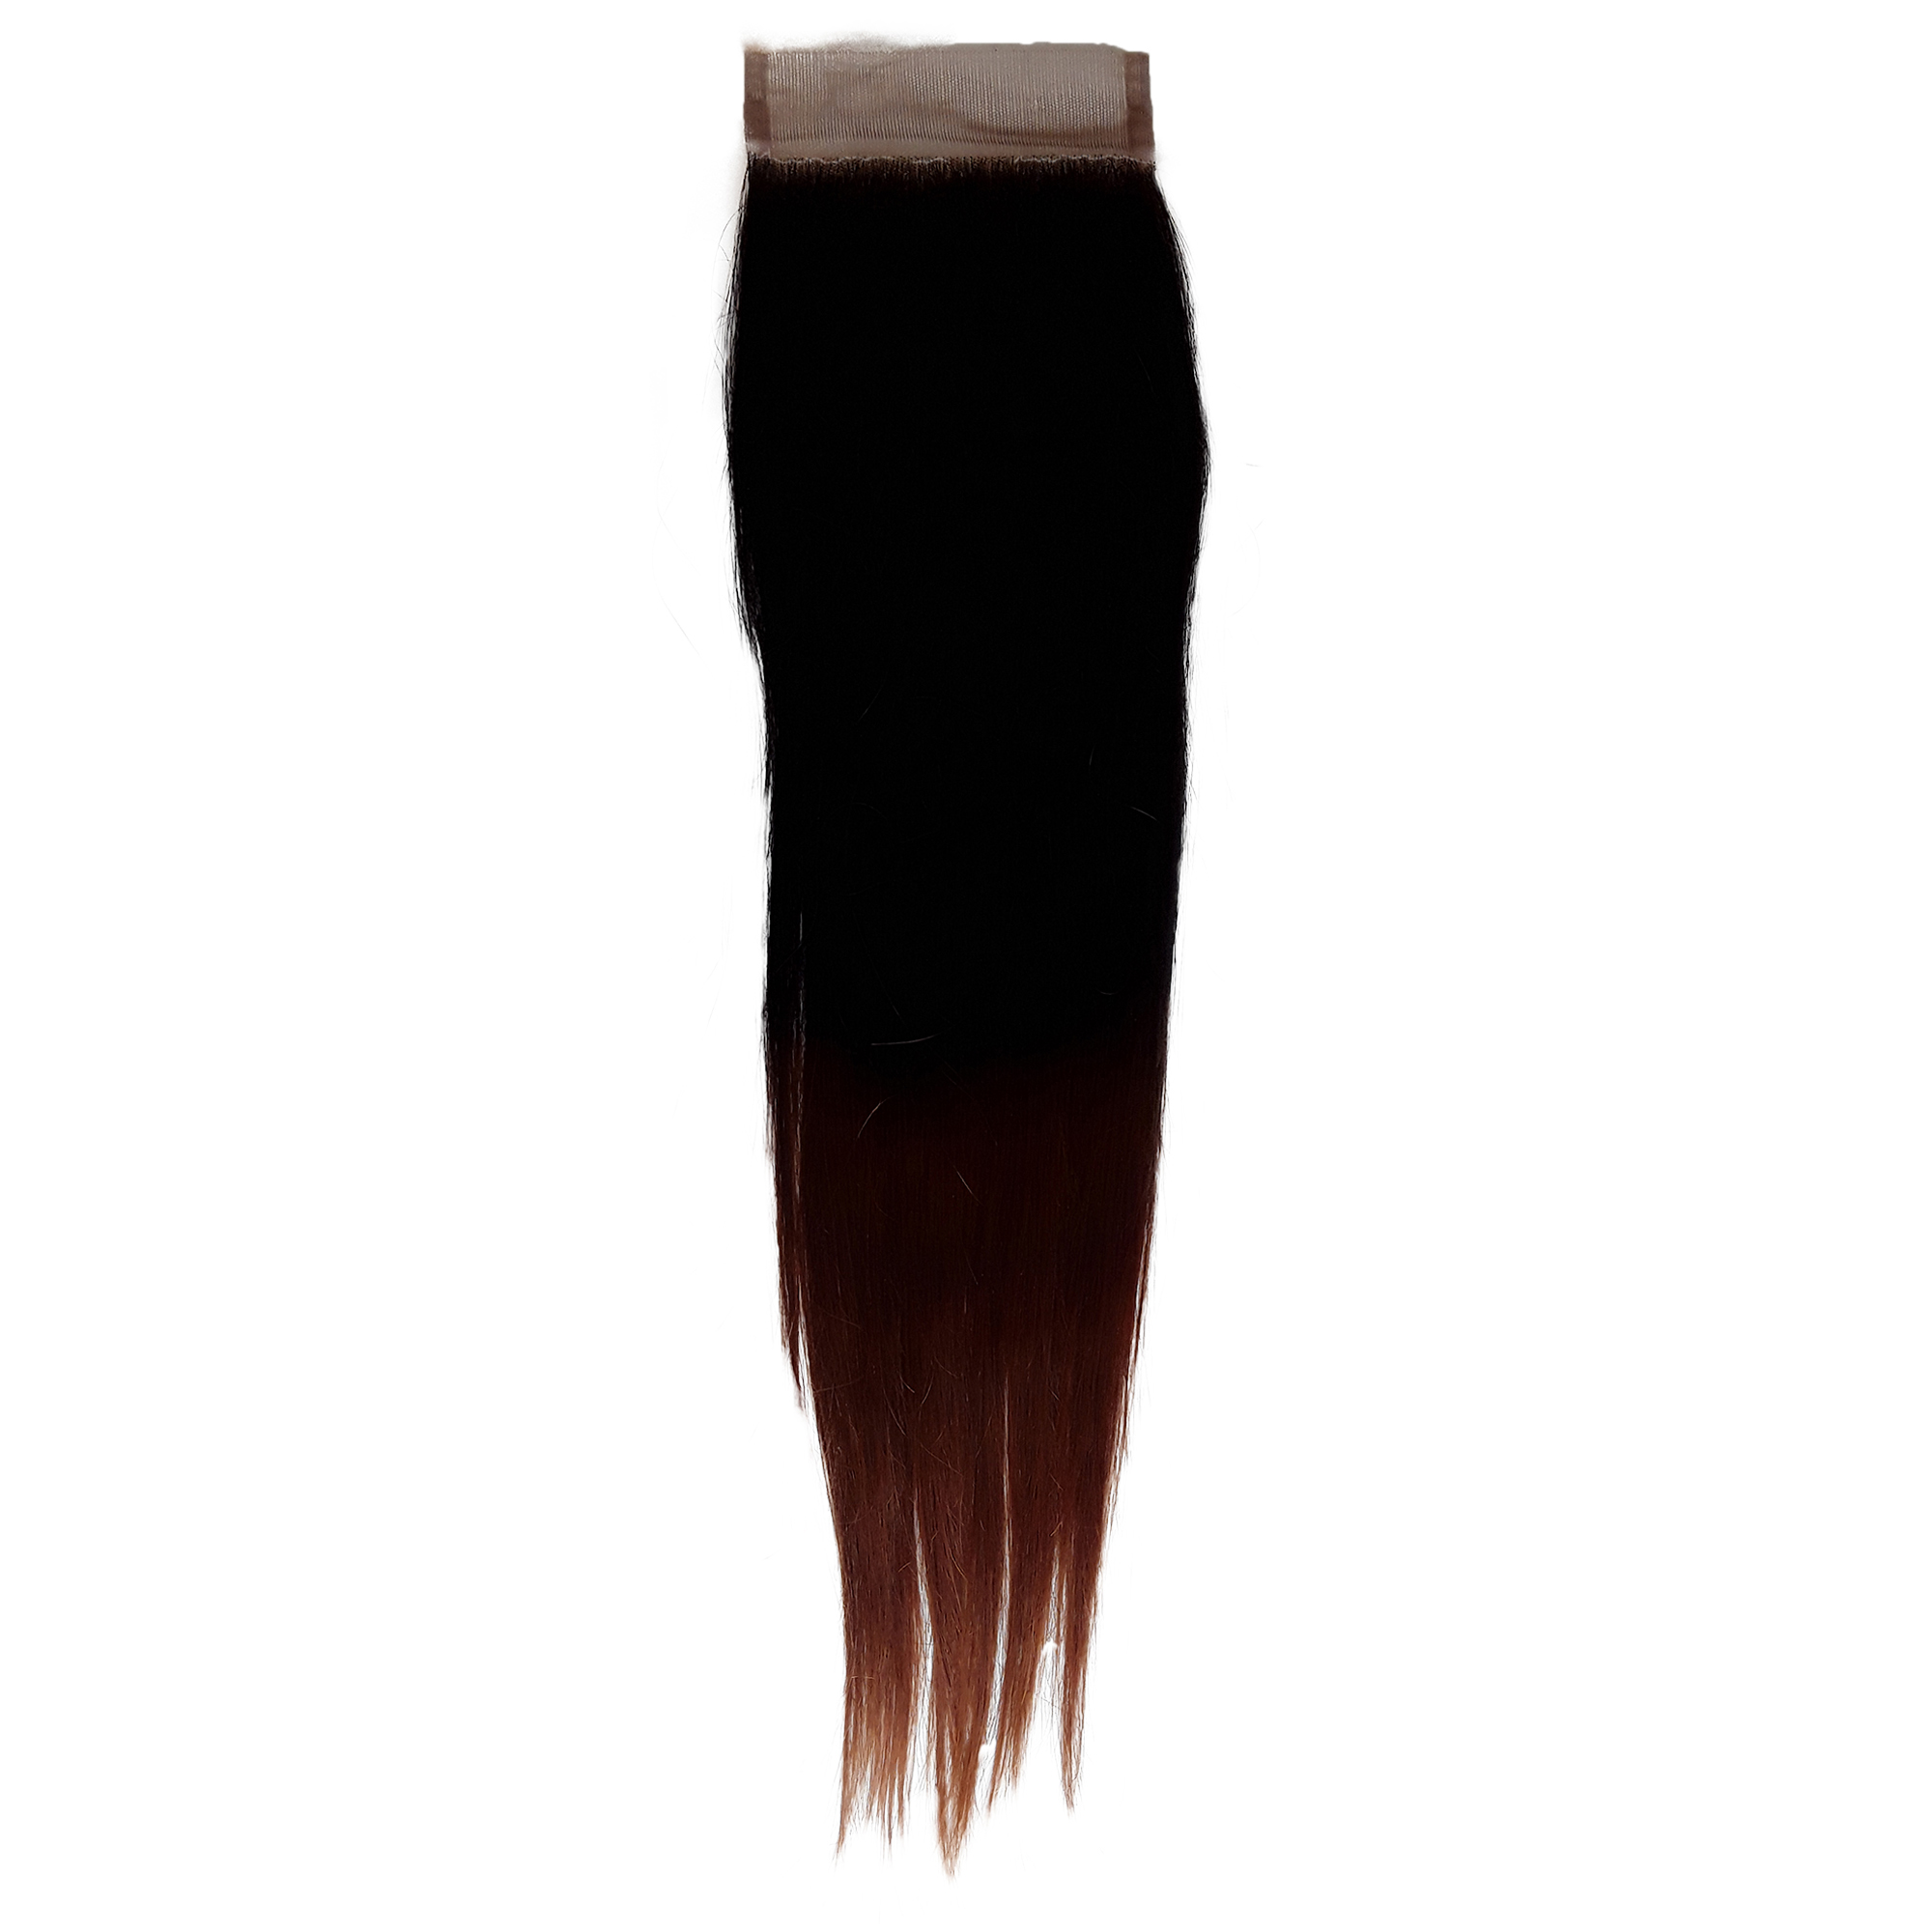 (Peruvian 100% human hair straight 100g per hair)